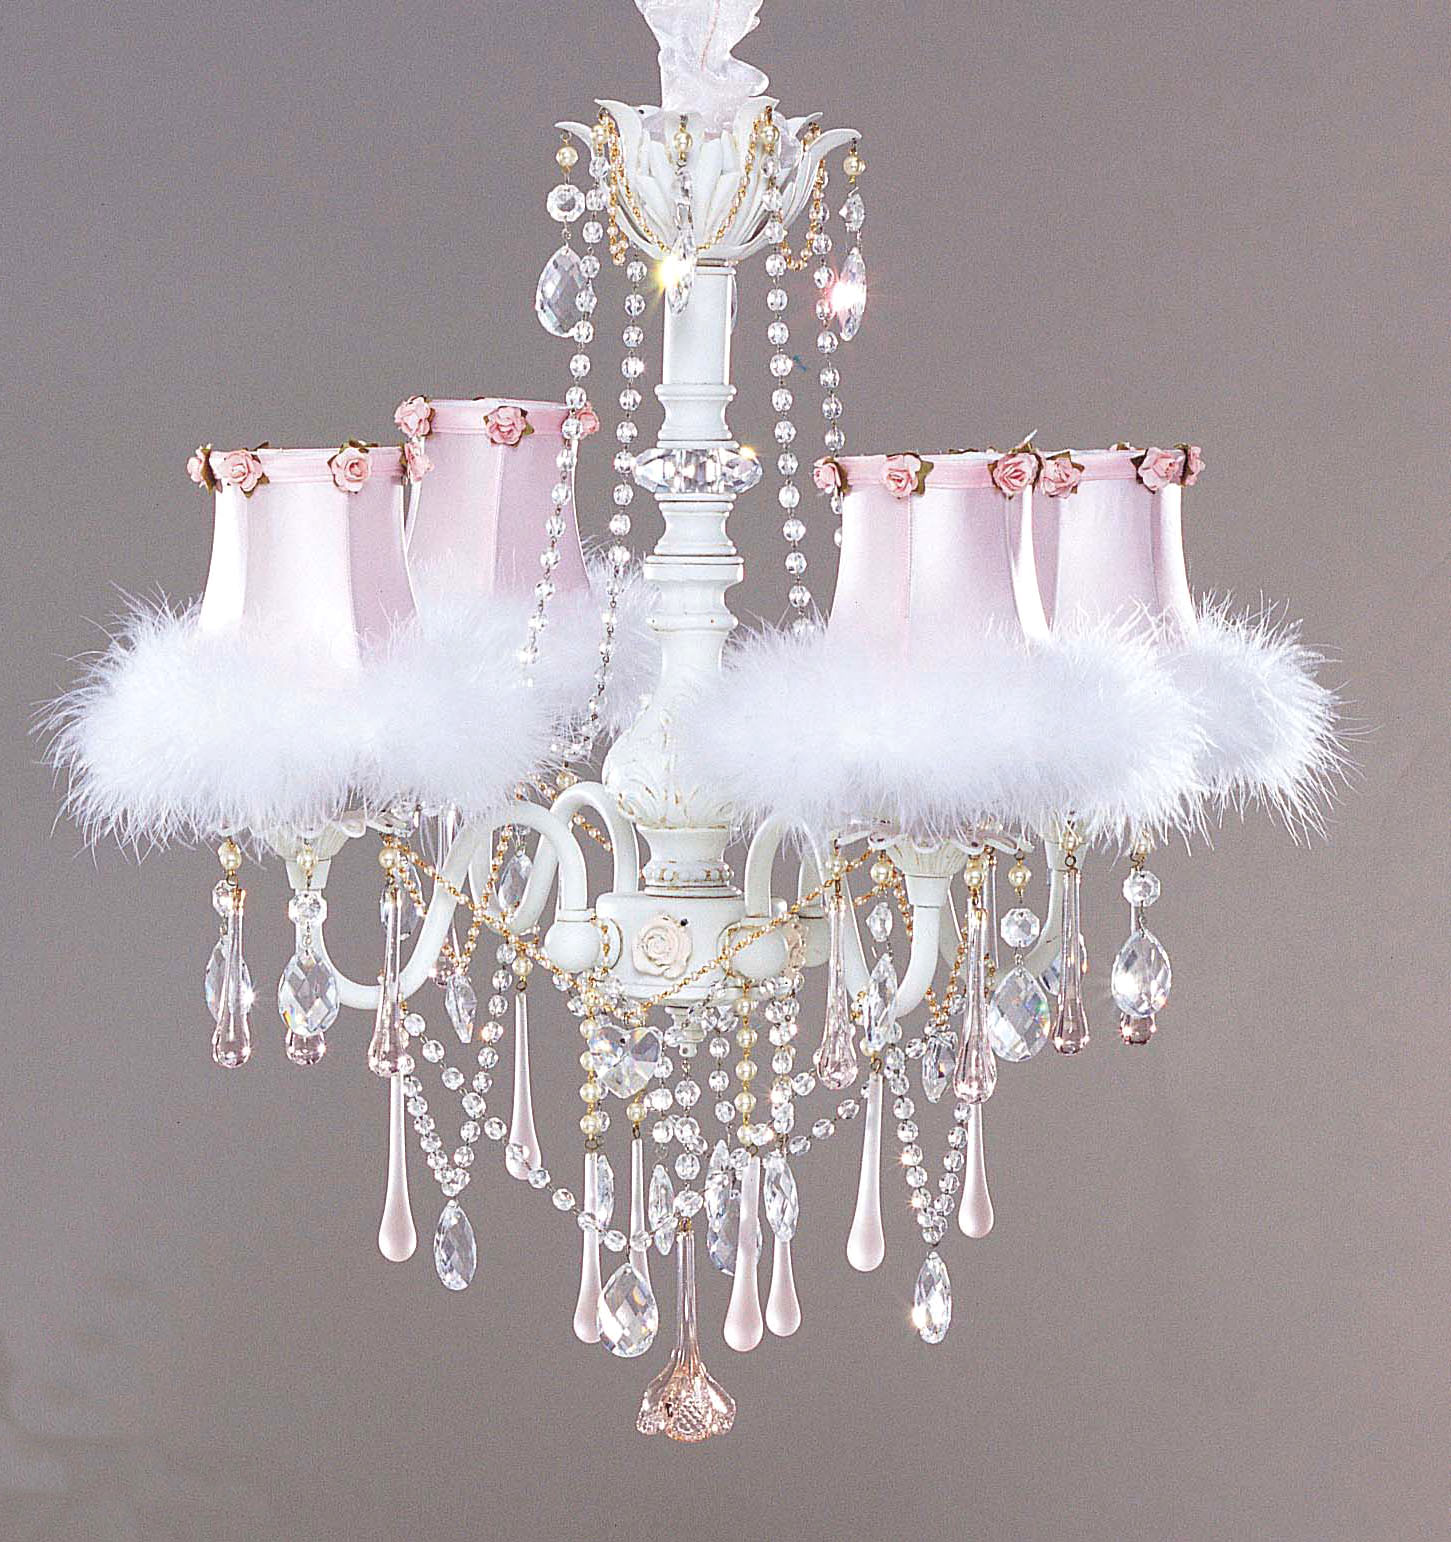 Remarkable Shabby Chic Room Chandelier for Girls 1451 x 1542 · 403 kB · jpeg